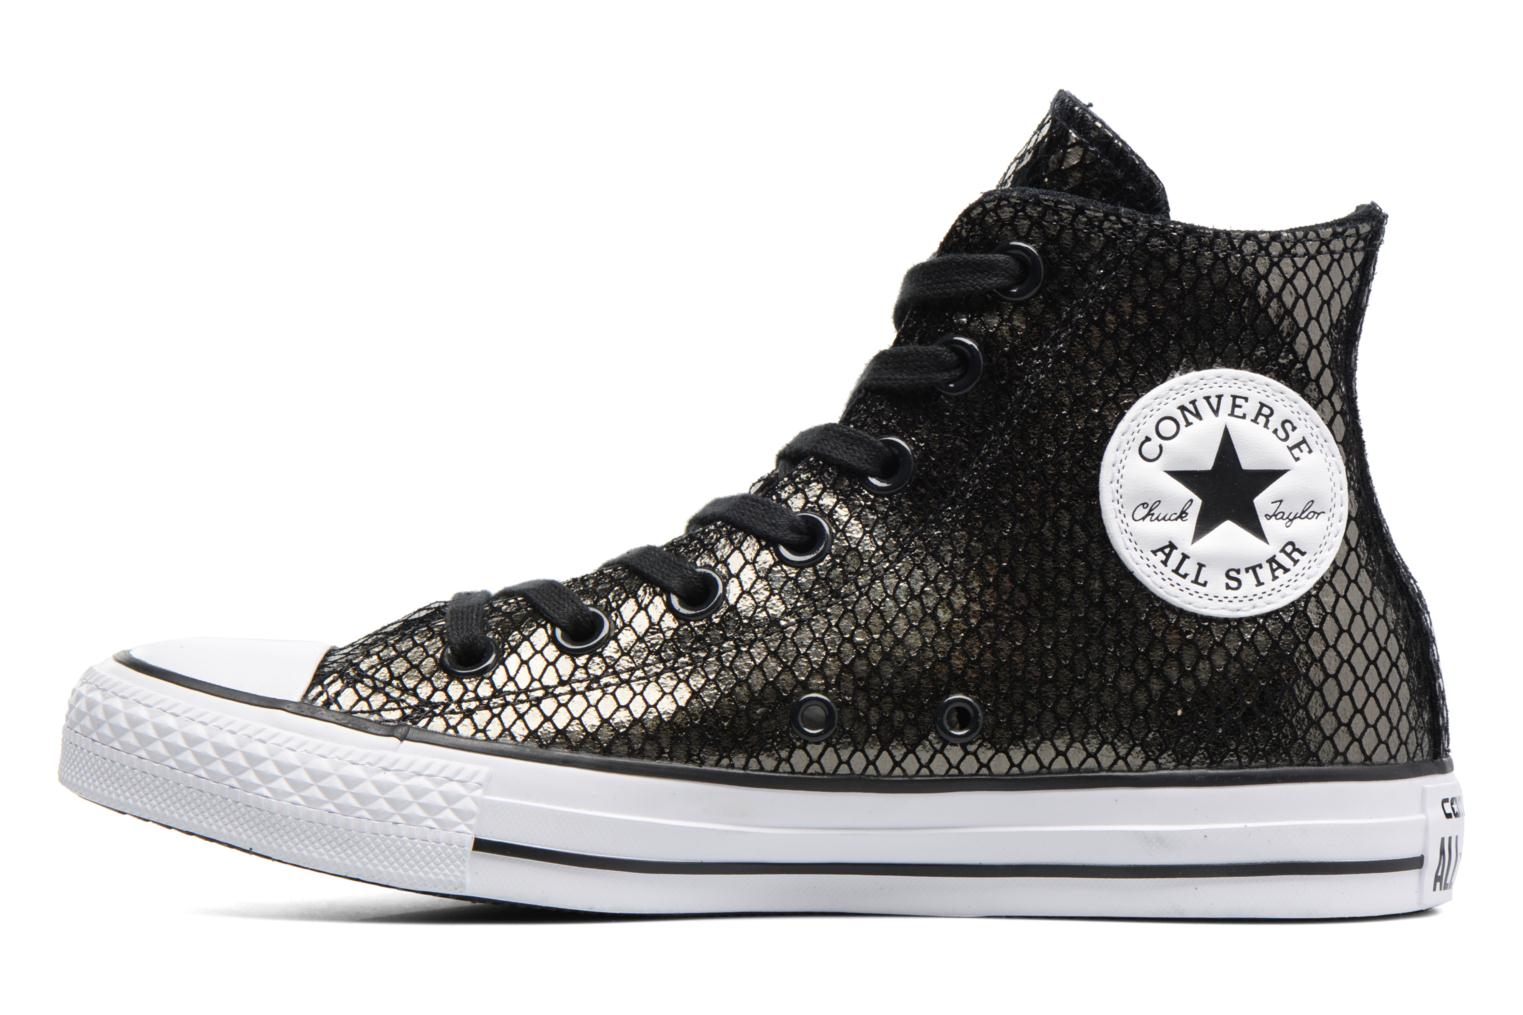 Chuck Taylor All Star Hi Metallic Snake Leather Black/black/white